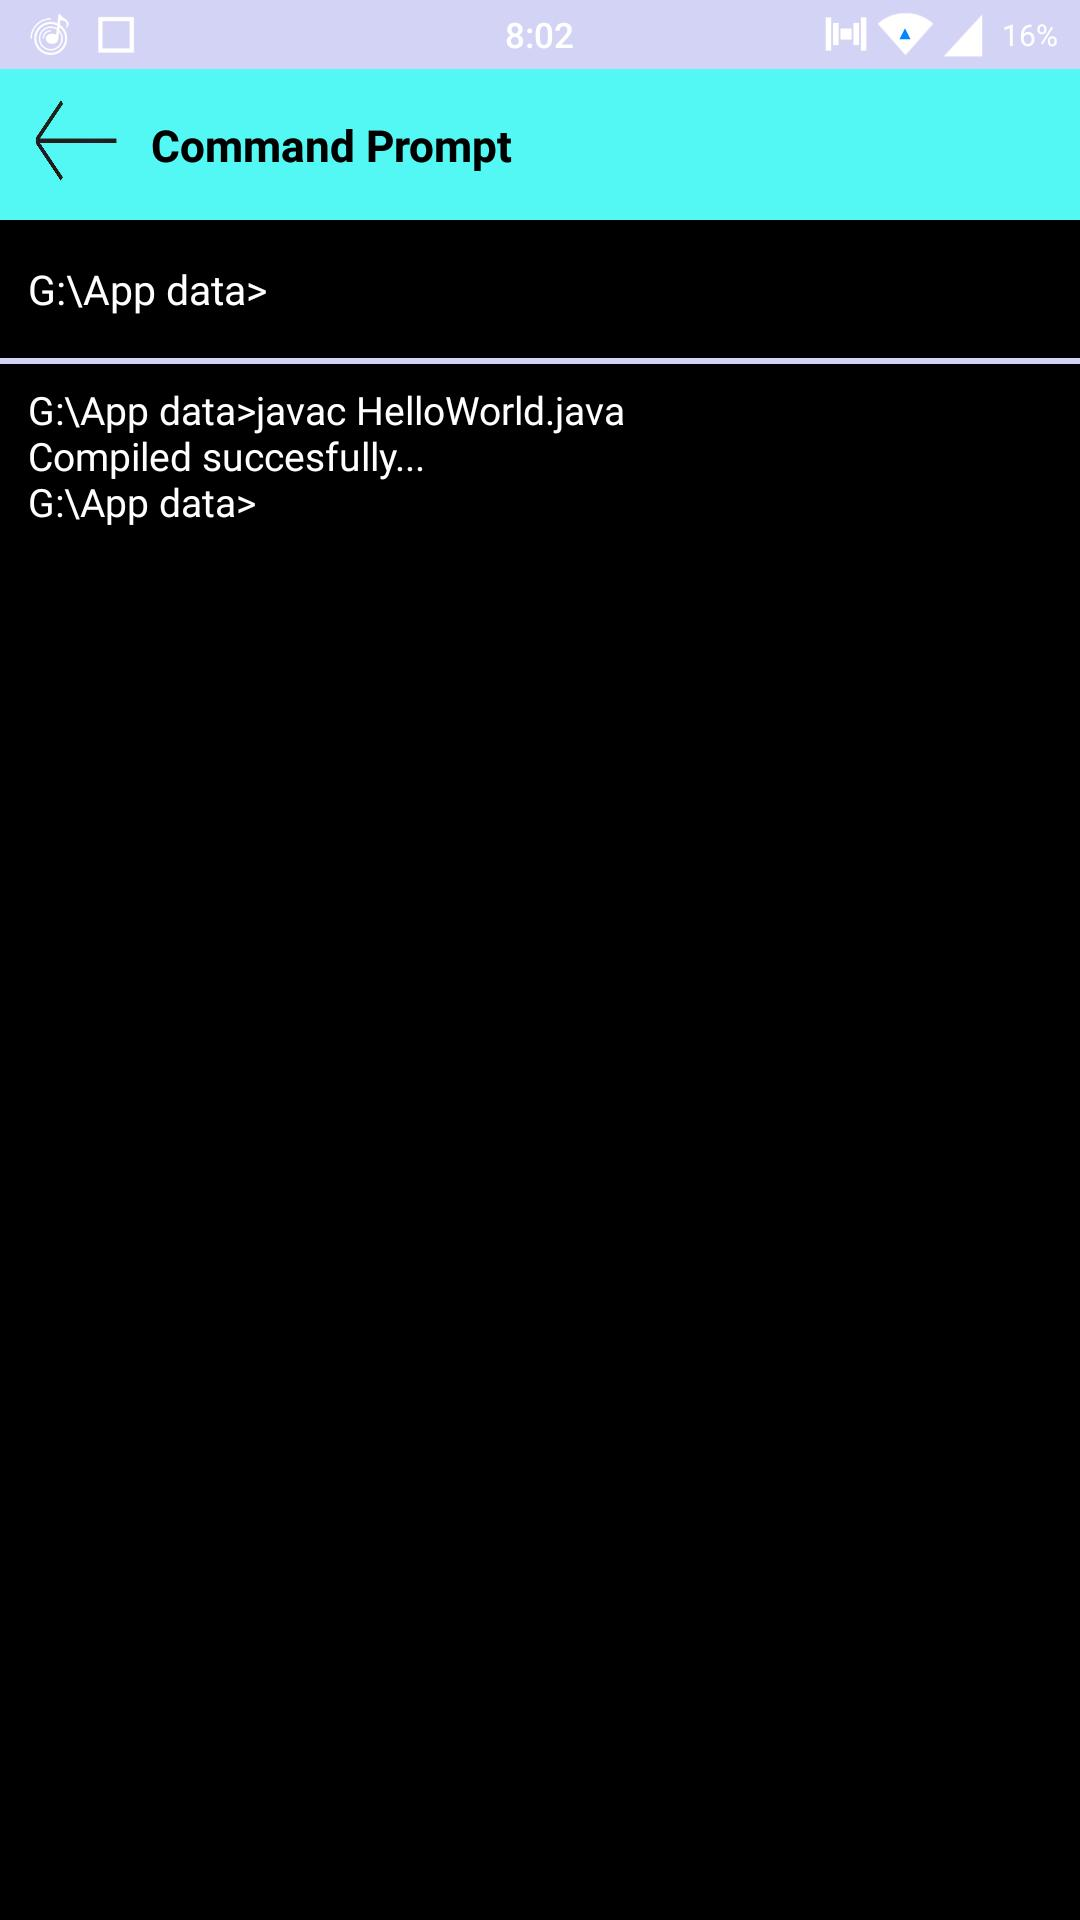 Command Prompt for Android - APK Download